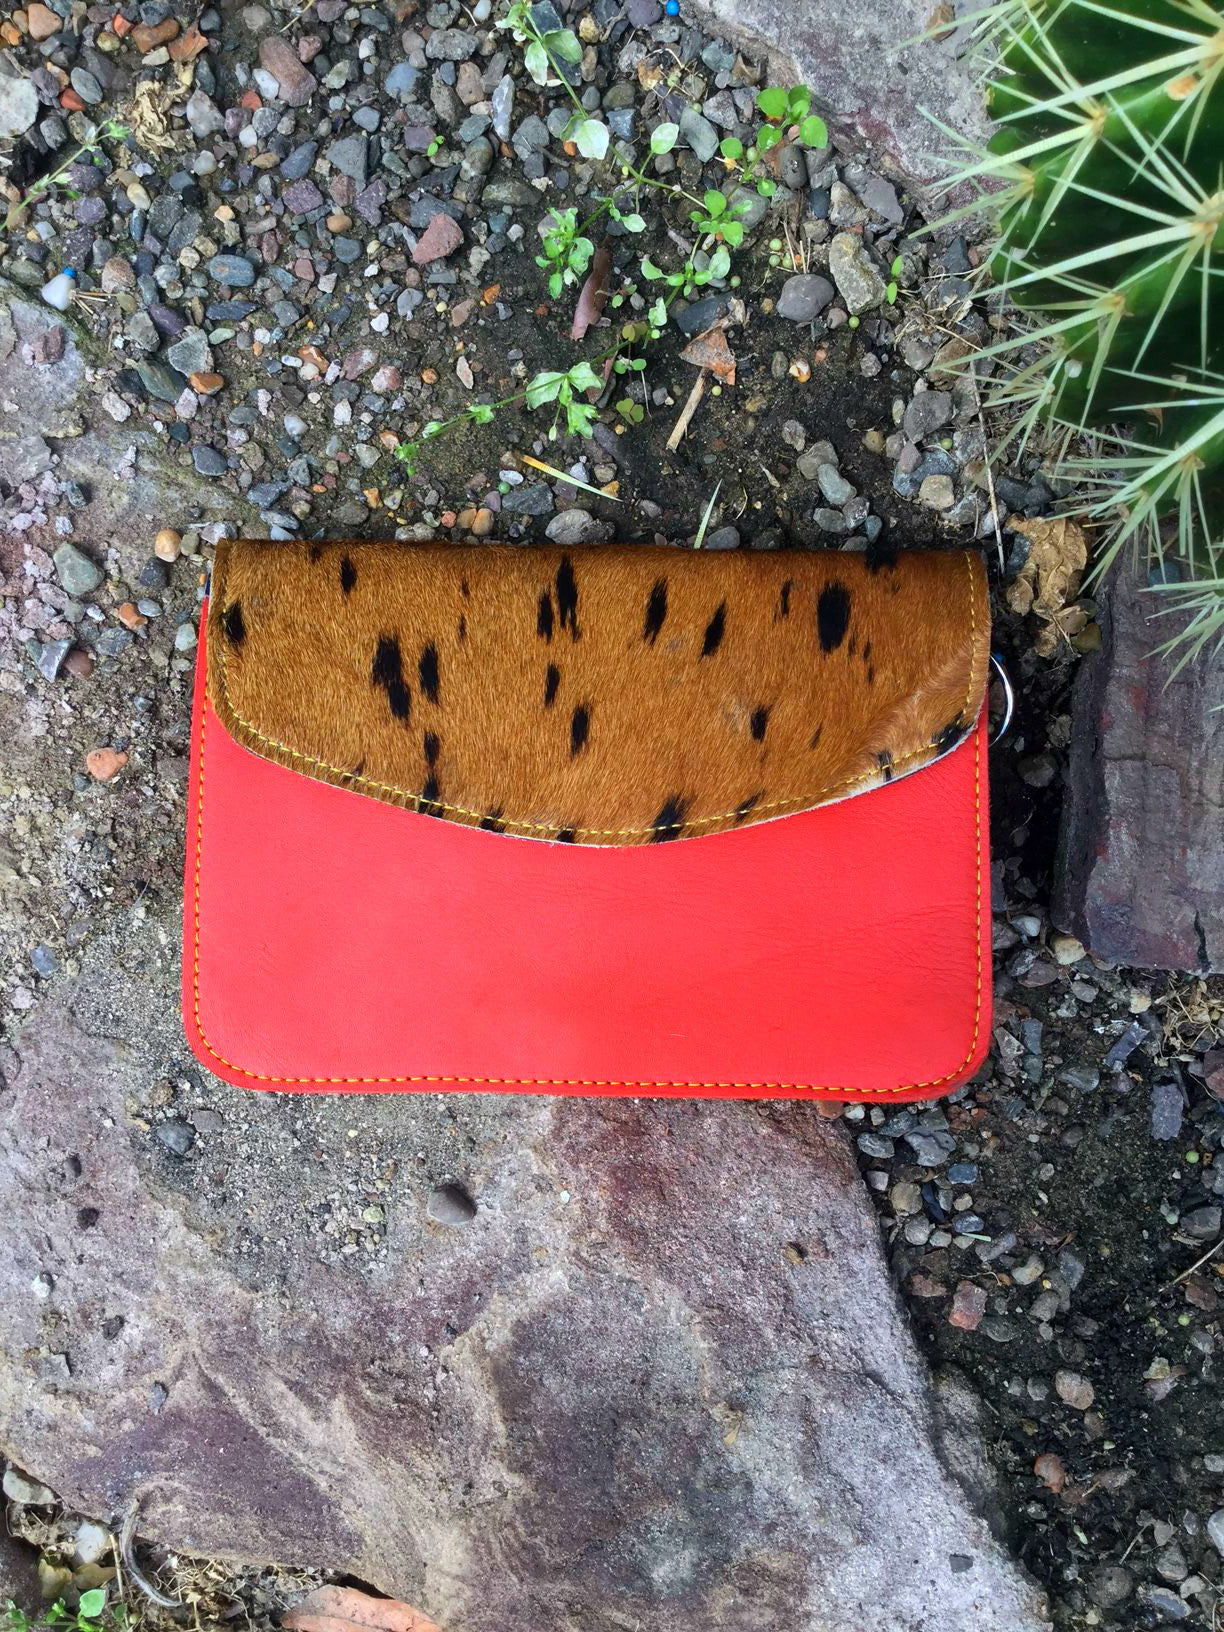 Sketch London animal pony print bags coral red envelope ethical sustainable british design gift women